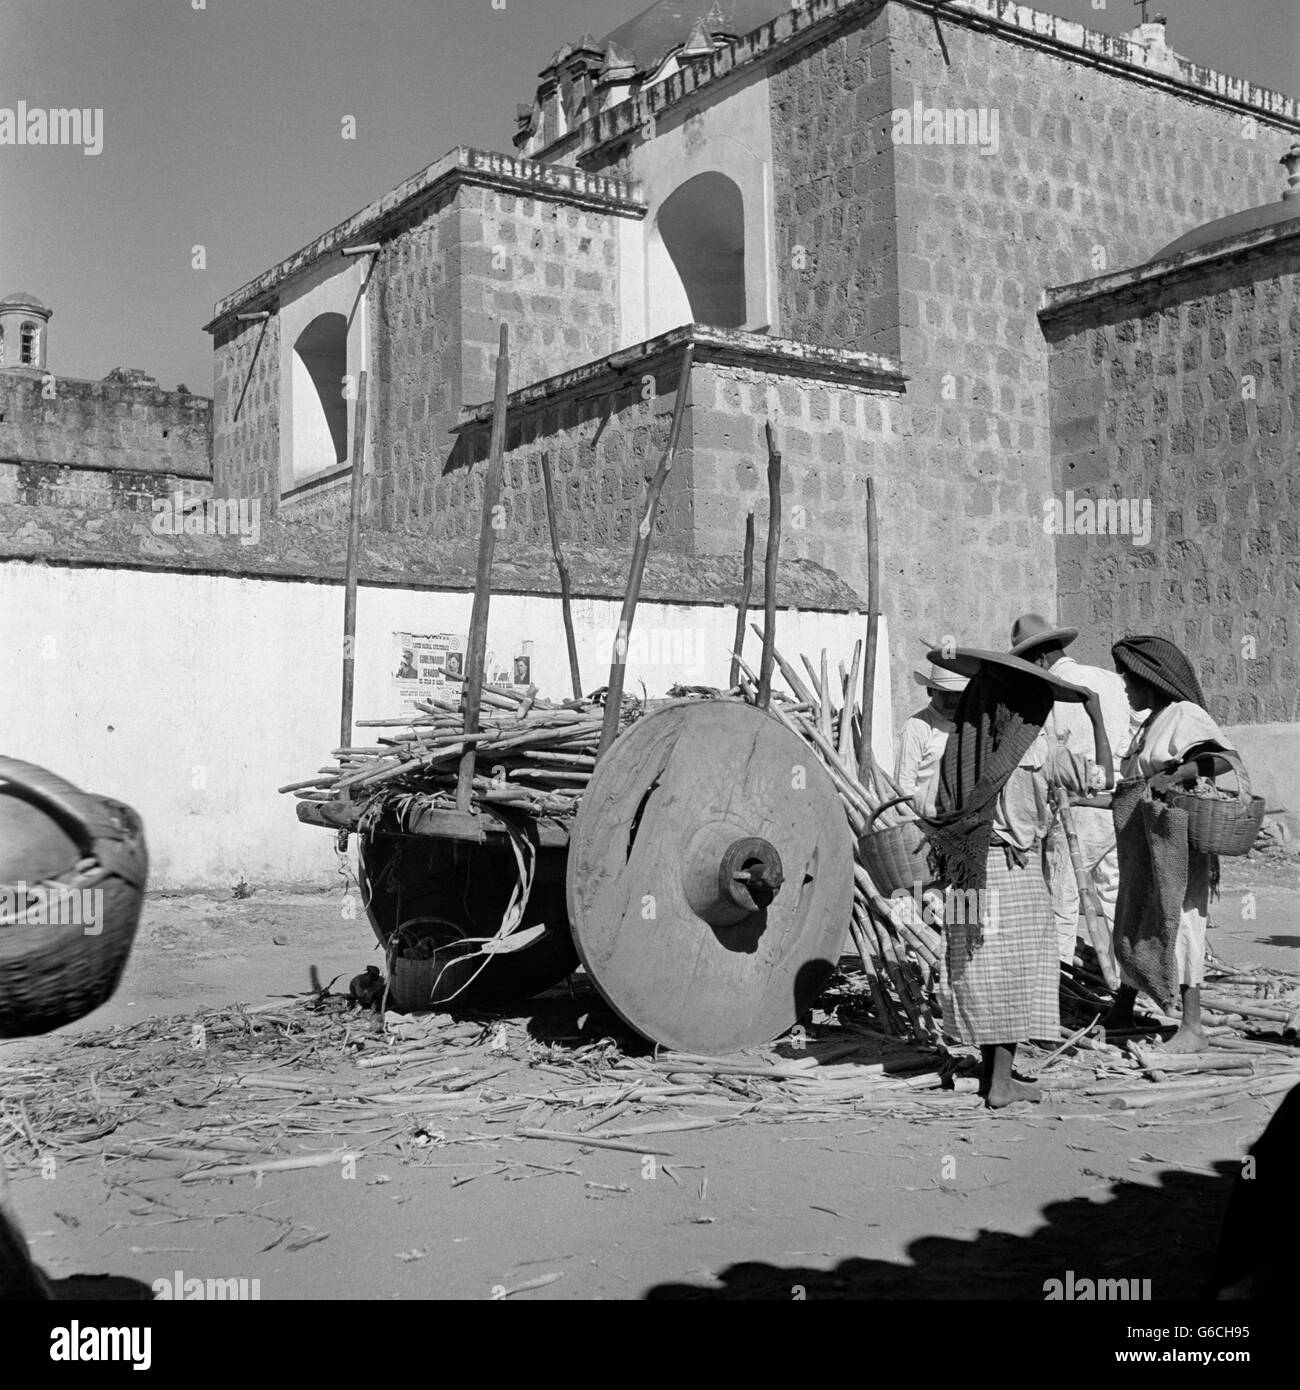 1930s OX CART LOADED WITH SUGAR CANE AND VENDORS IN OUTDOOR MARKET OAXACA MEXICO - Stock Image